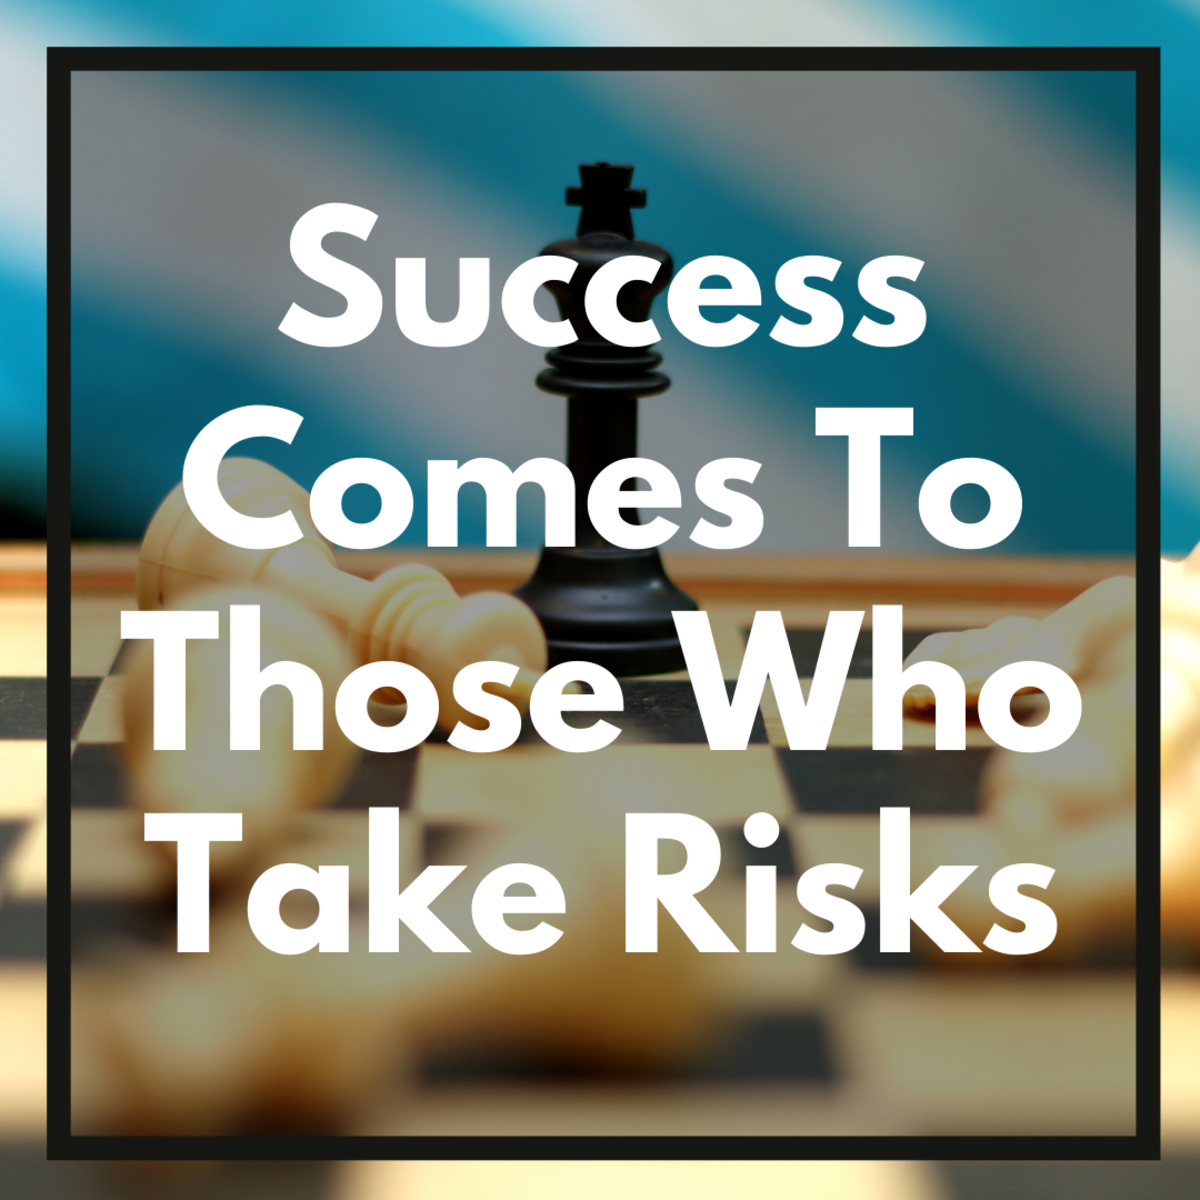 Essay on Success Comes To Those Who Take Risks